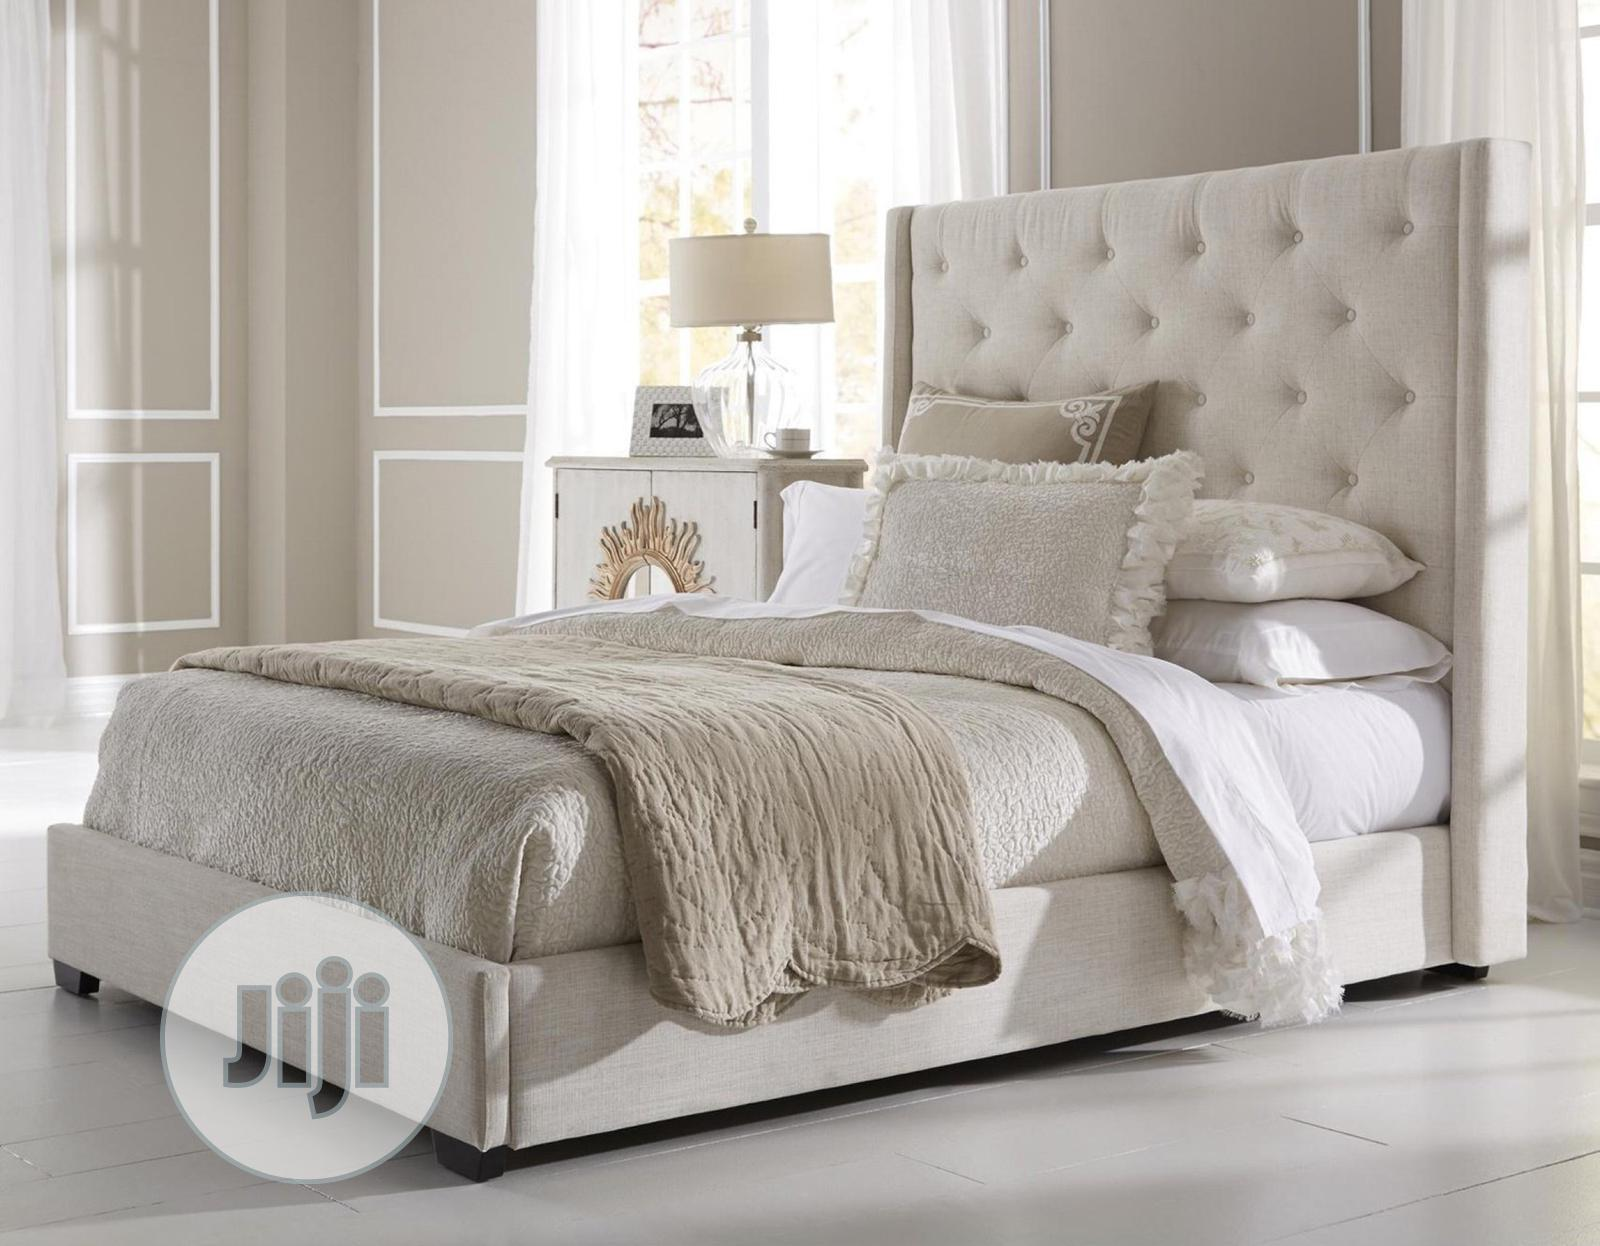 Queen Size Bedframe Chest Upholstered Bed